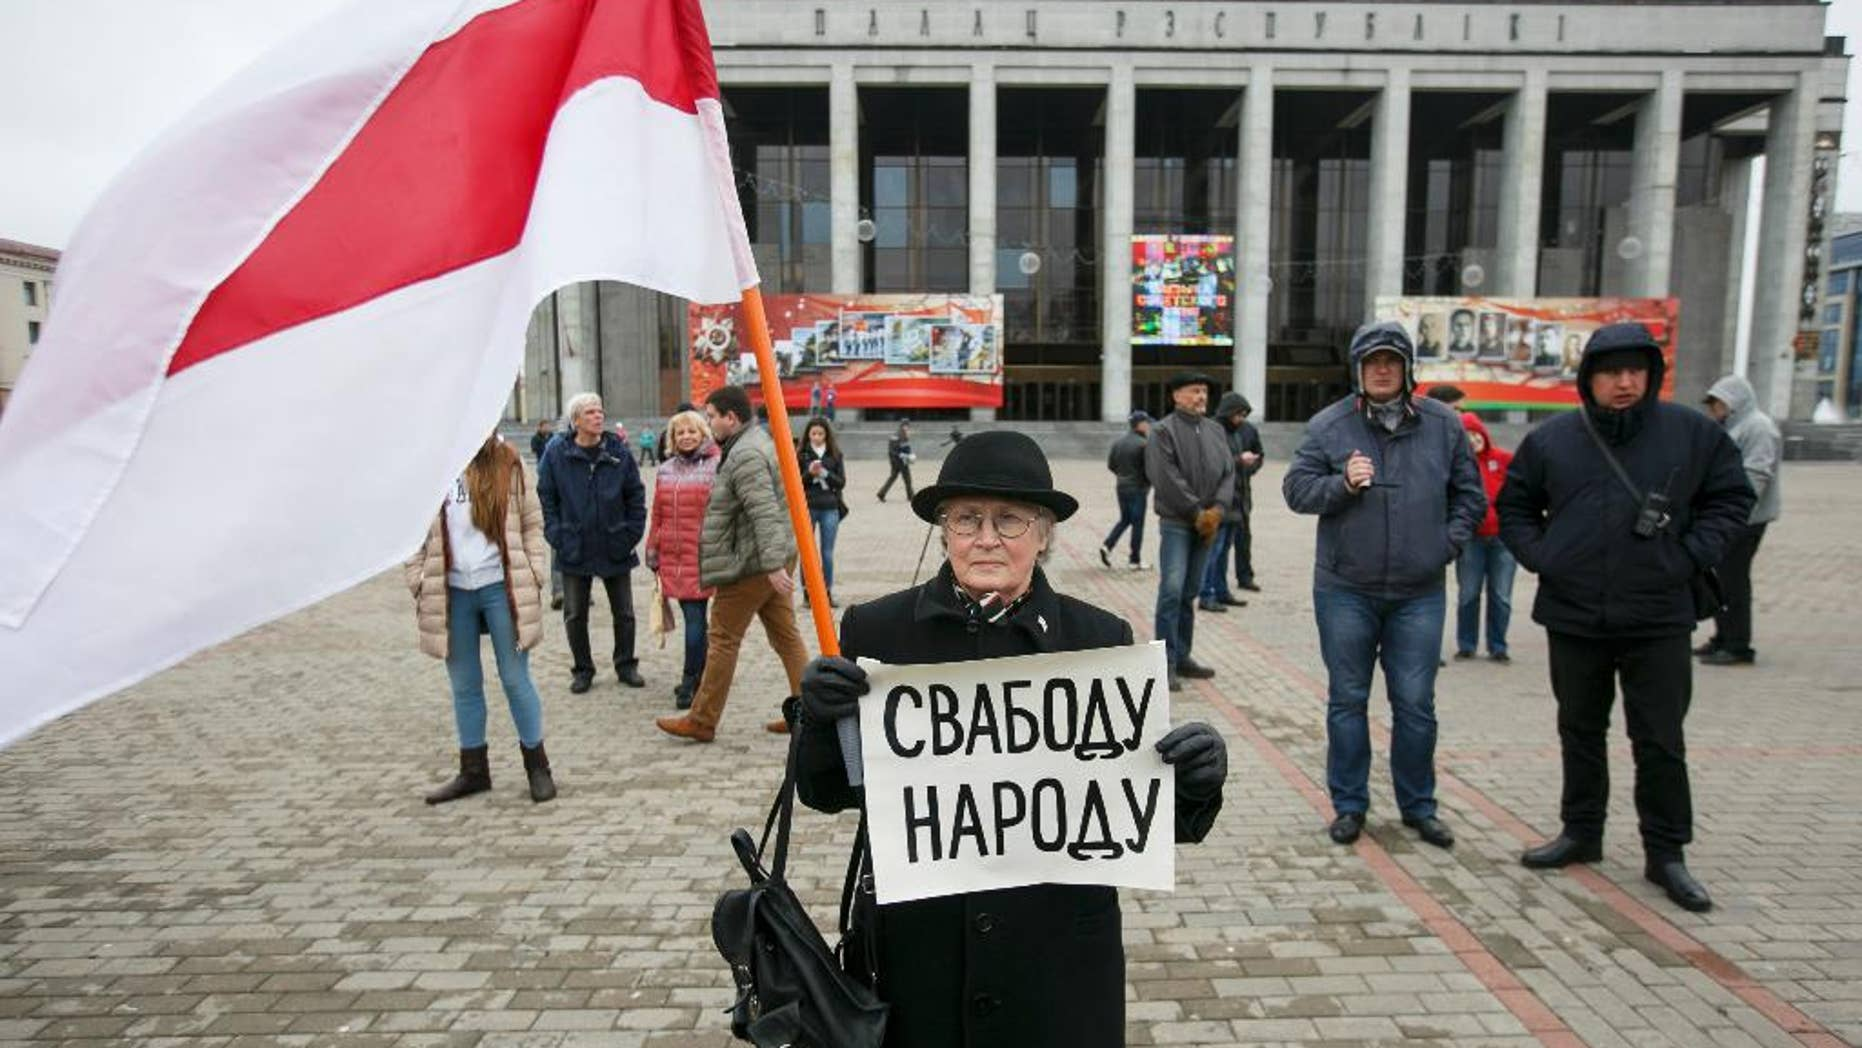 A protester holds a poster reading 'Freedom for the people' and an old Belarus flag, a symbol of protest, during an opposition rally in Minsk, Belarus, Monday, May 1, 2017. The protesters marched through central Minsk calling for the government to step down and for free elections to be held. (AP Photo)